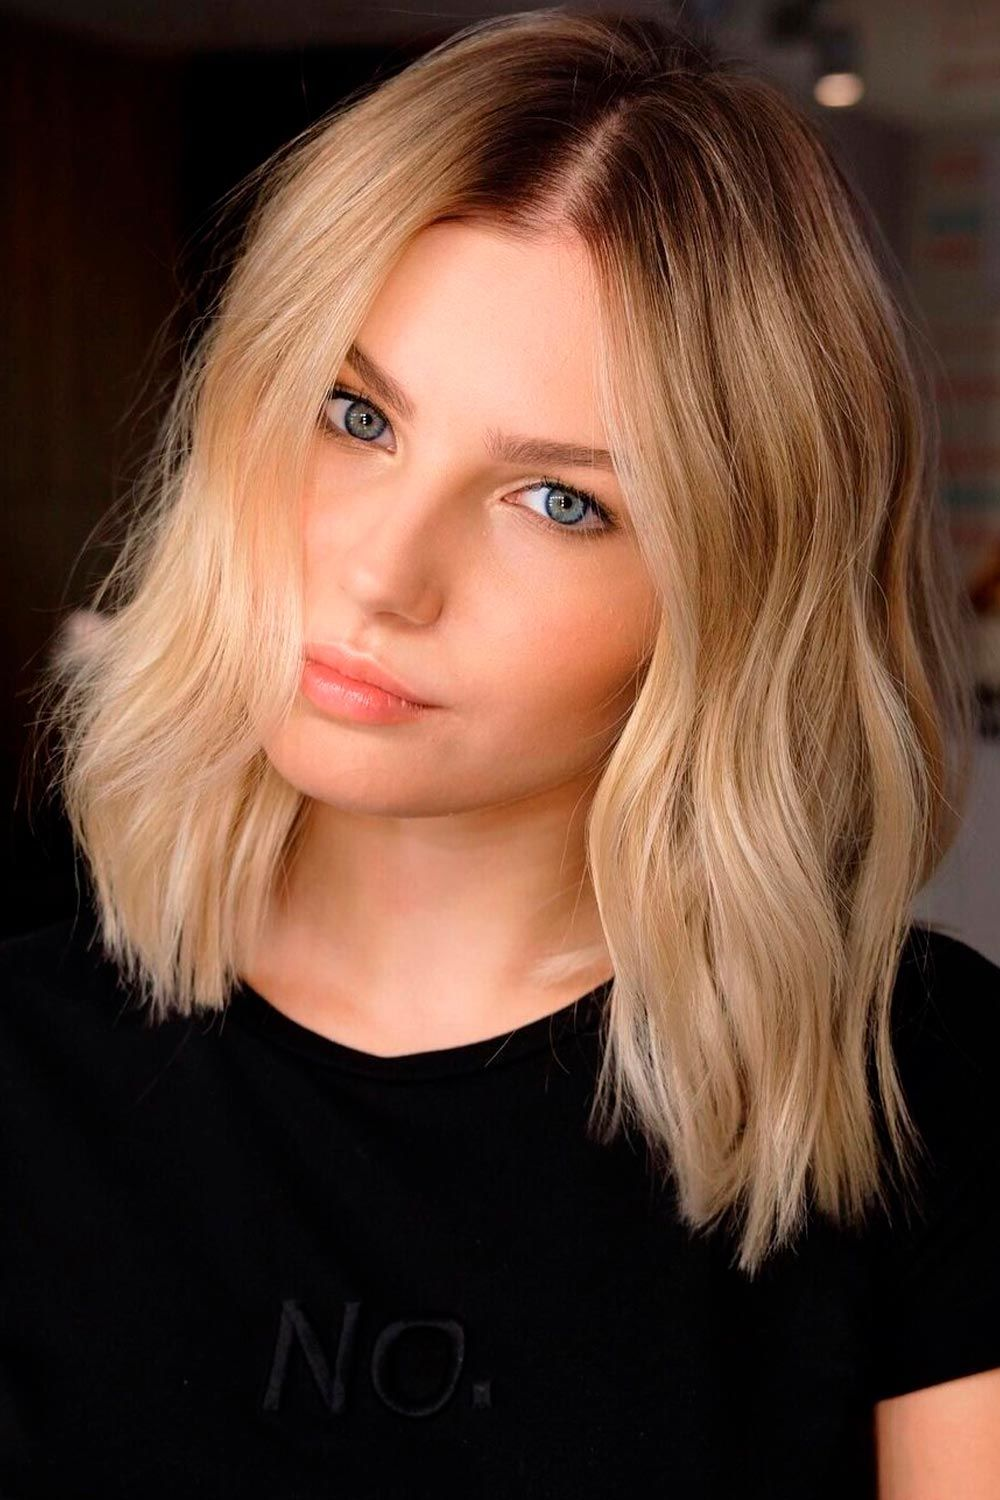 Ombre Short Hair For Natural Look, purple ombre hair short, short grey ombre hair, ombre hairstyles for short hair